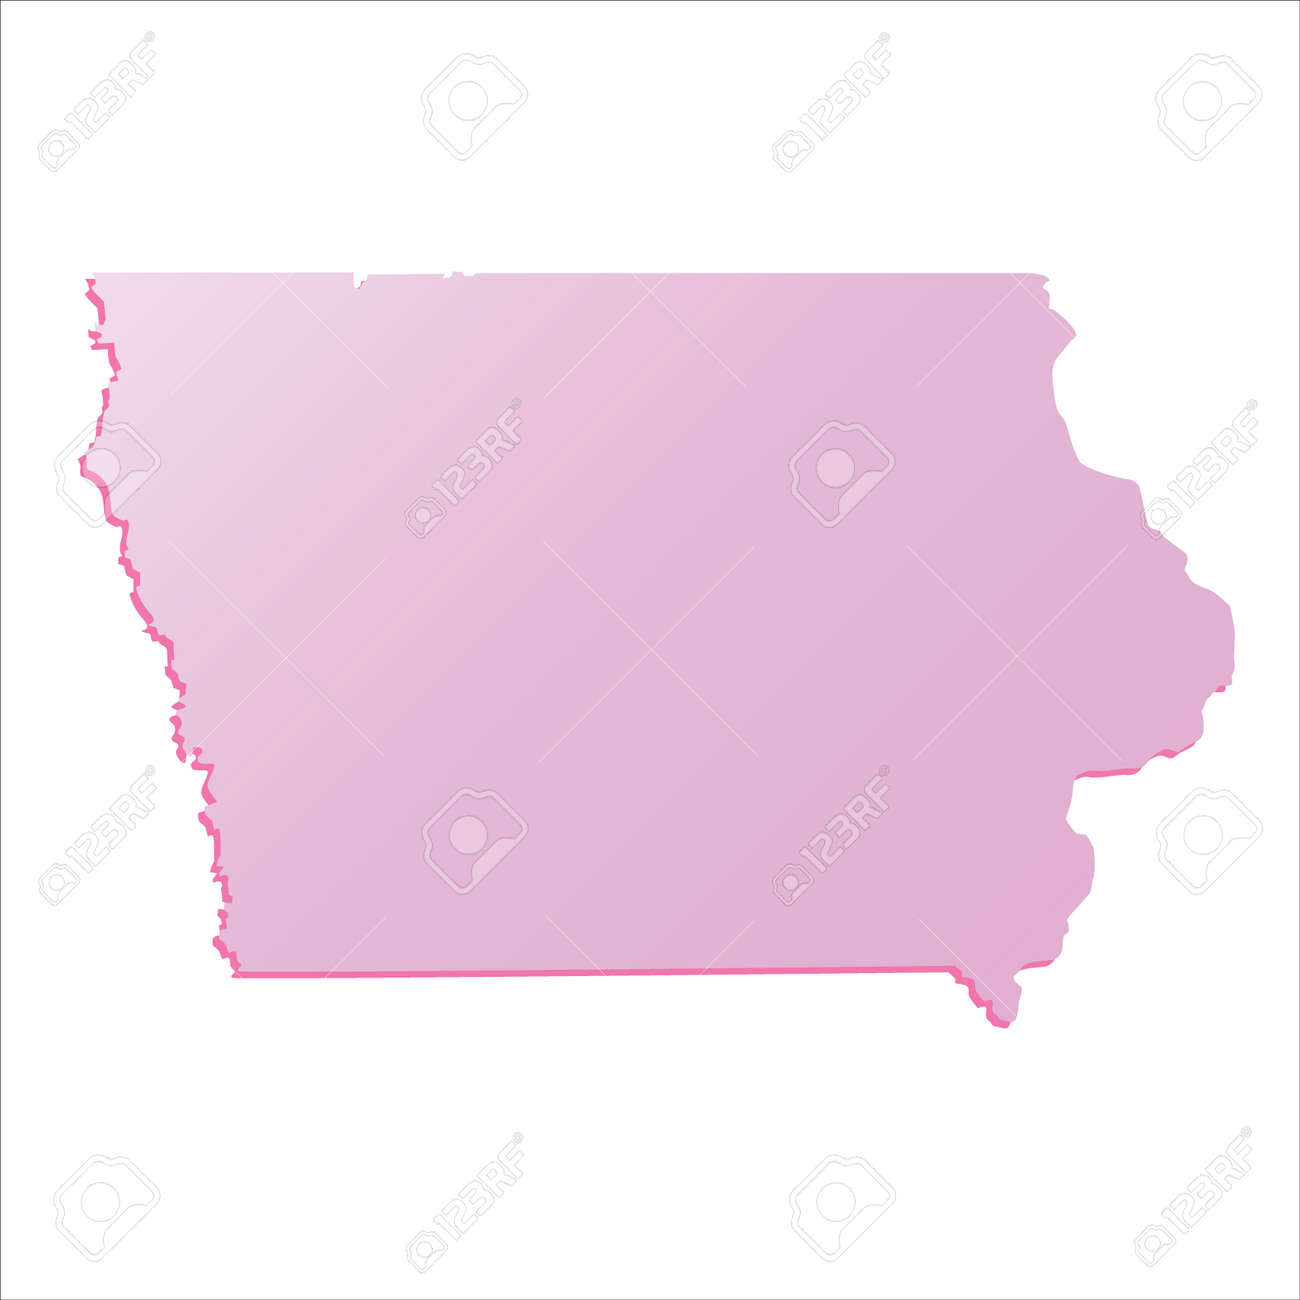 Map Of State Of Iowa Usa Vector Color Map Of Iowa State Usa Iowa - Iowa state in usa map